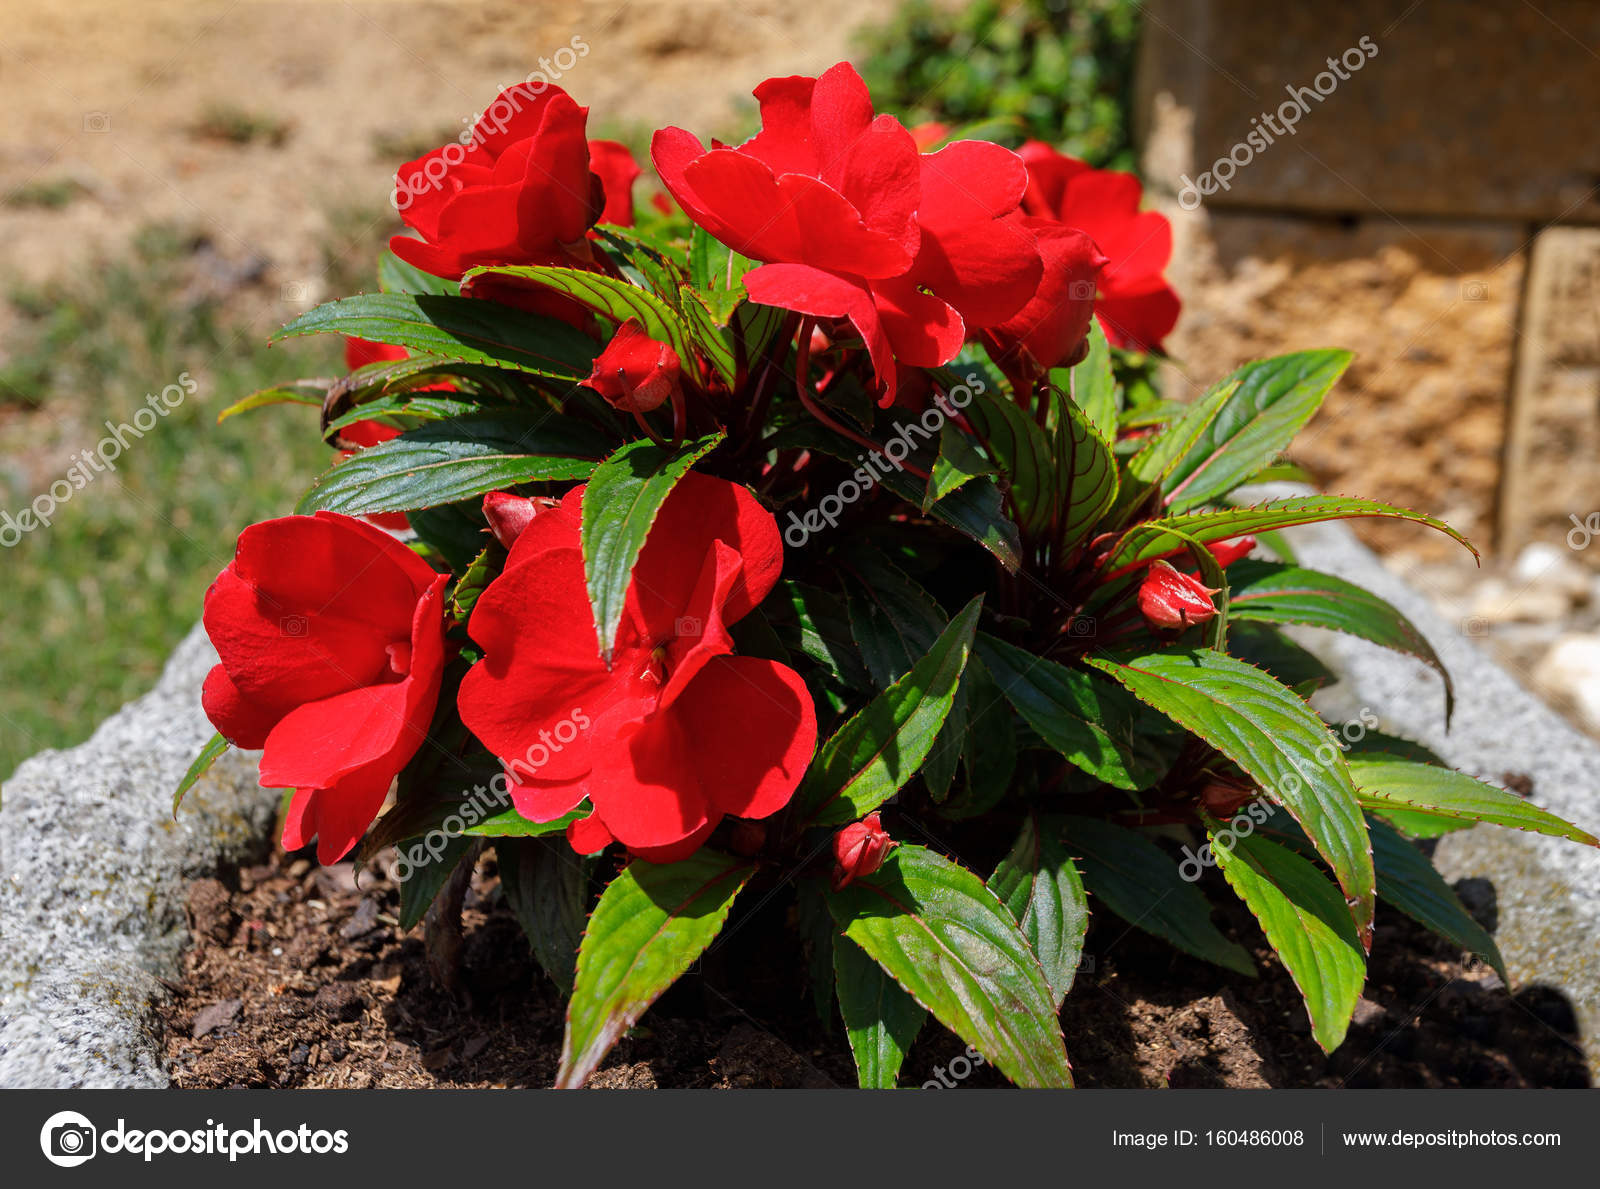 Red new guinea impatiens flowers in pots stock photo artush beautiful red and new guinea impatiens flowers in summer garden photo by artush mightylinksfo